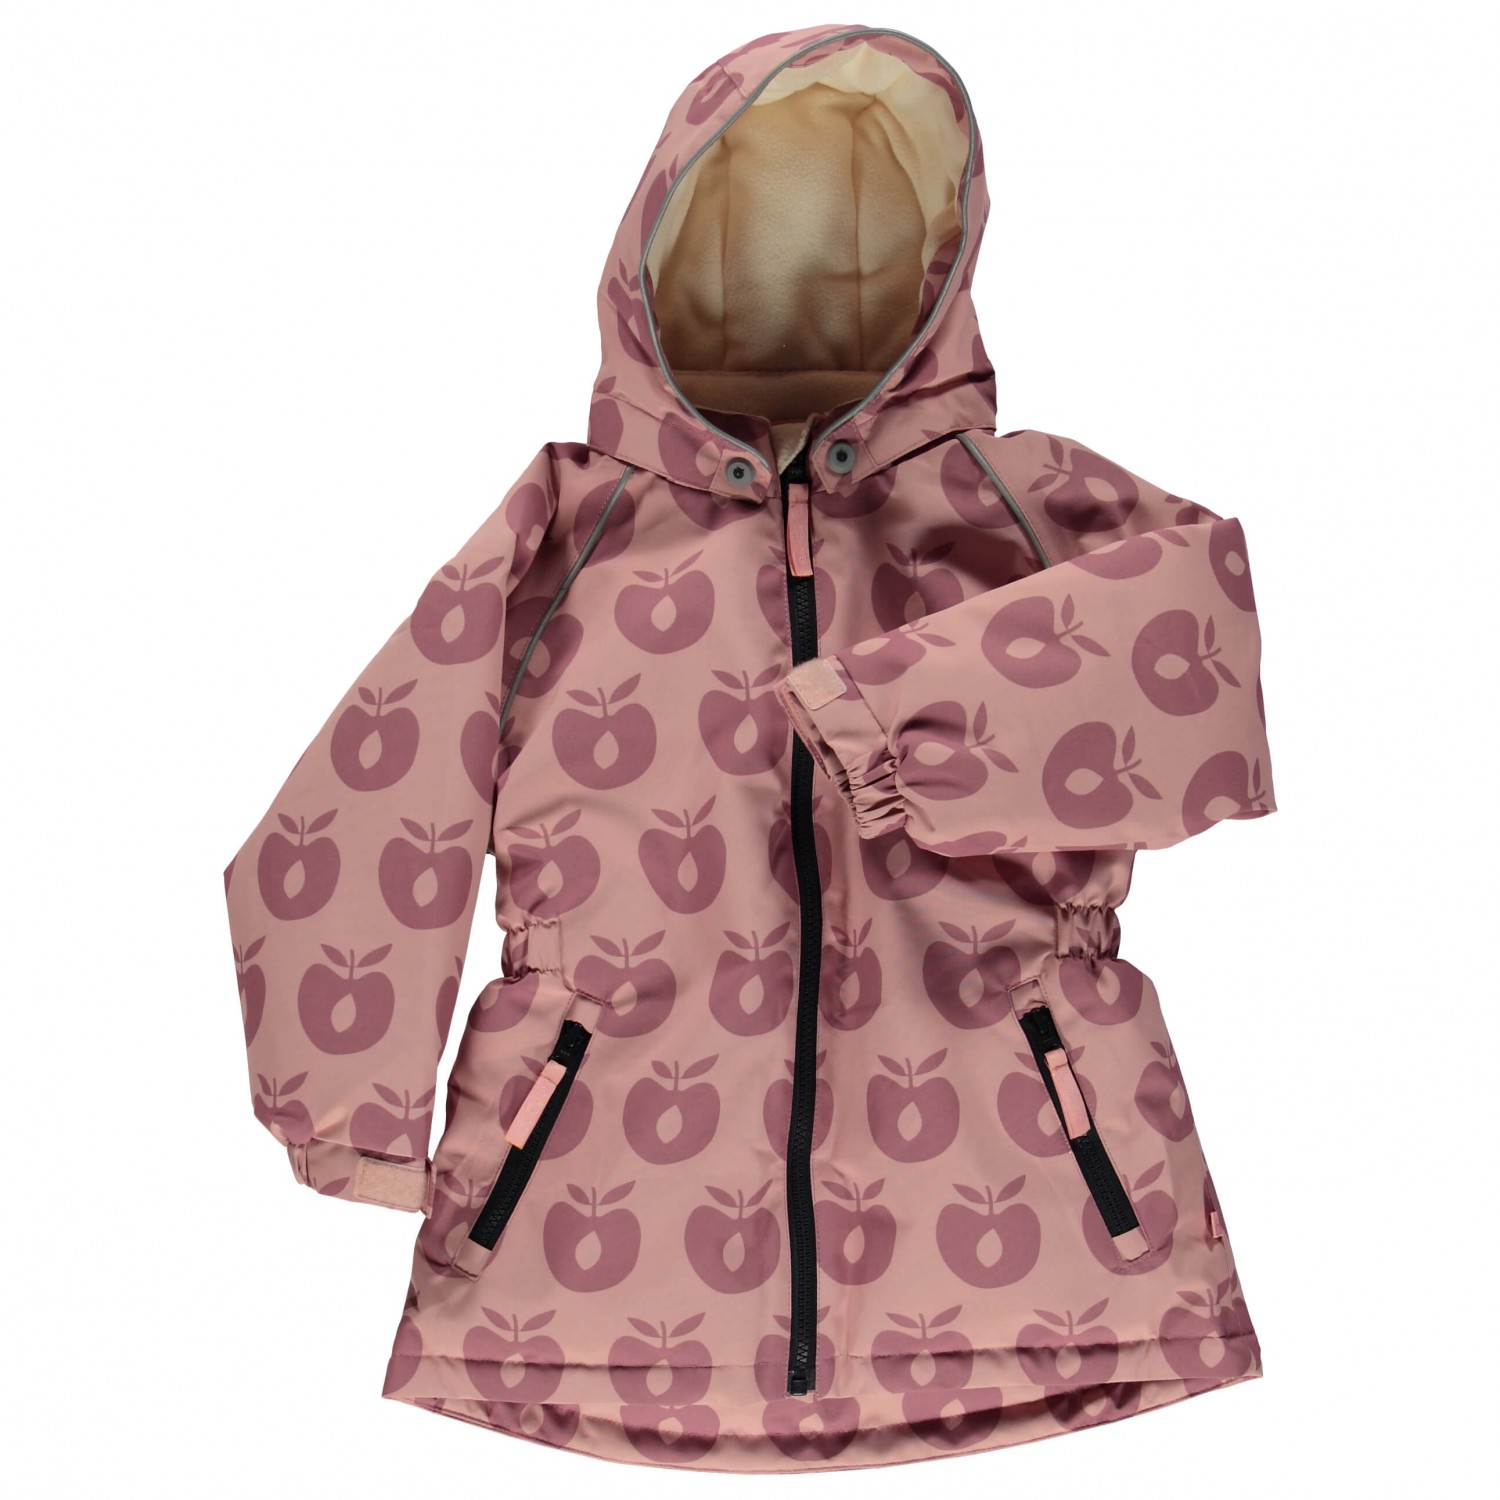 f09b573e7 Smafolk Winter Jacket with Apples - Coat Girls